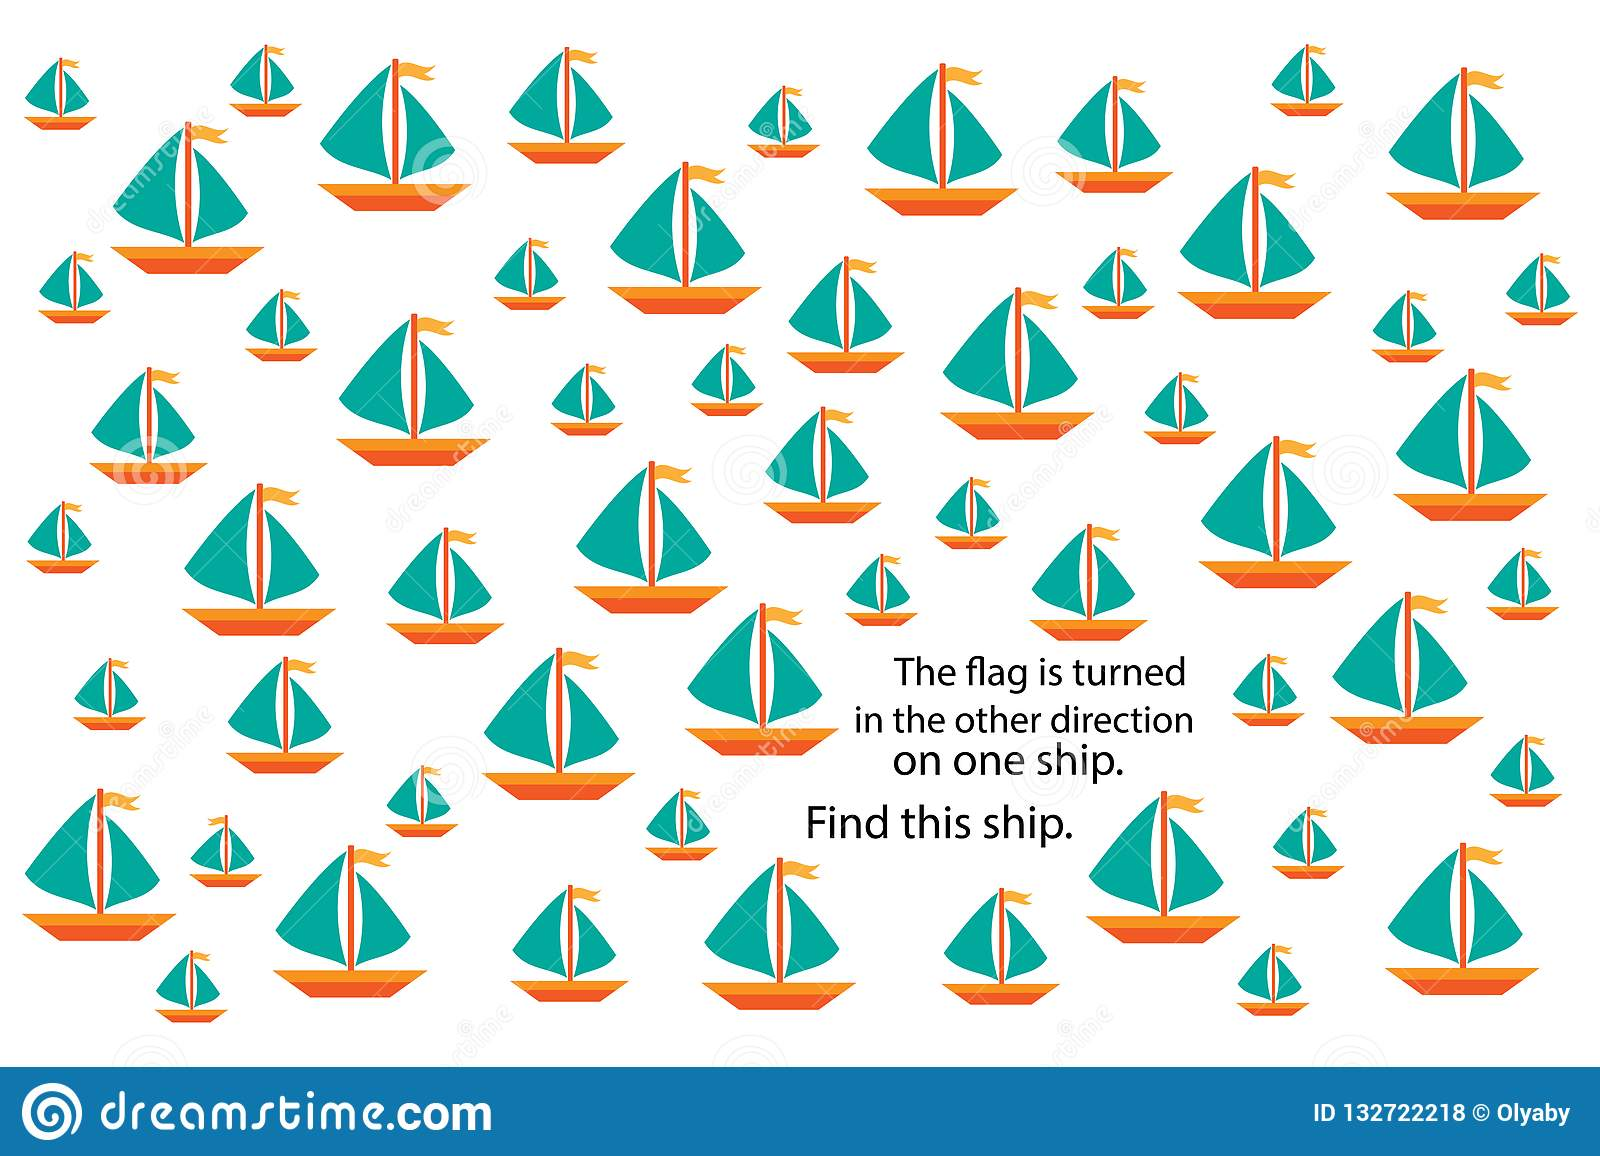 Find Different Ship Fun Education Puzzle Game With